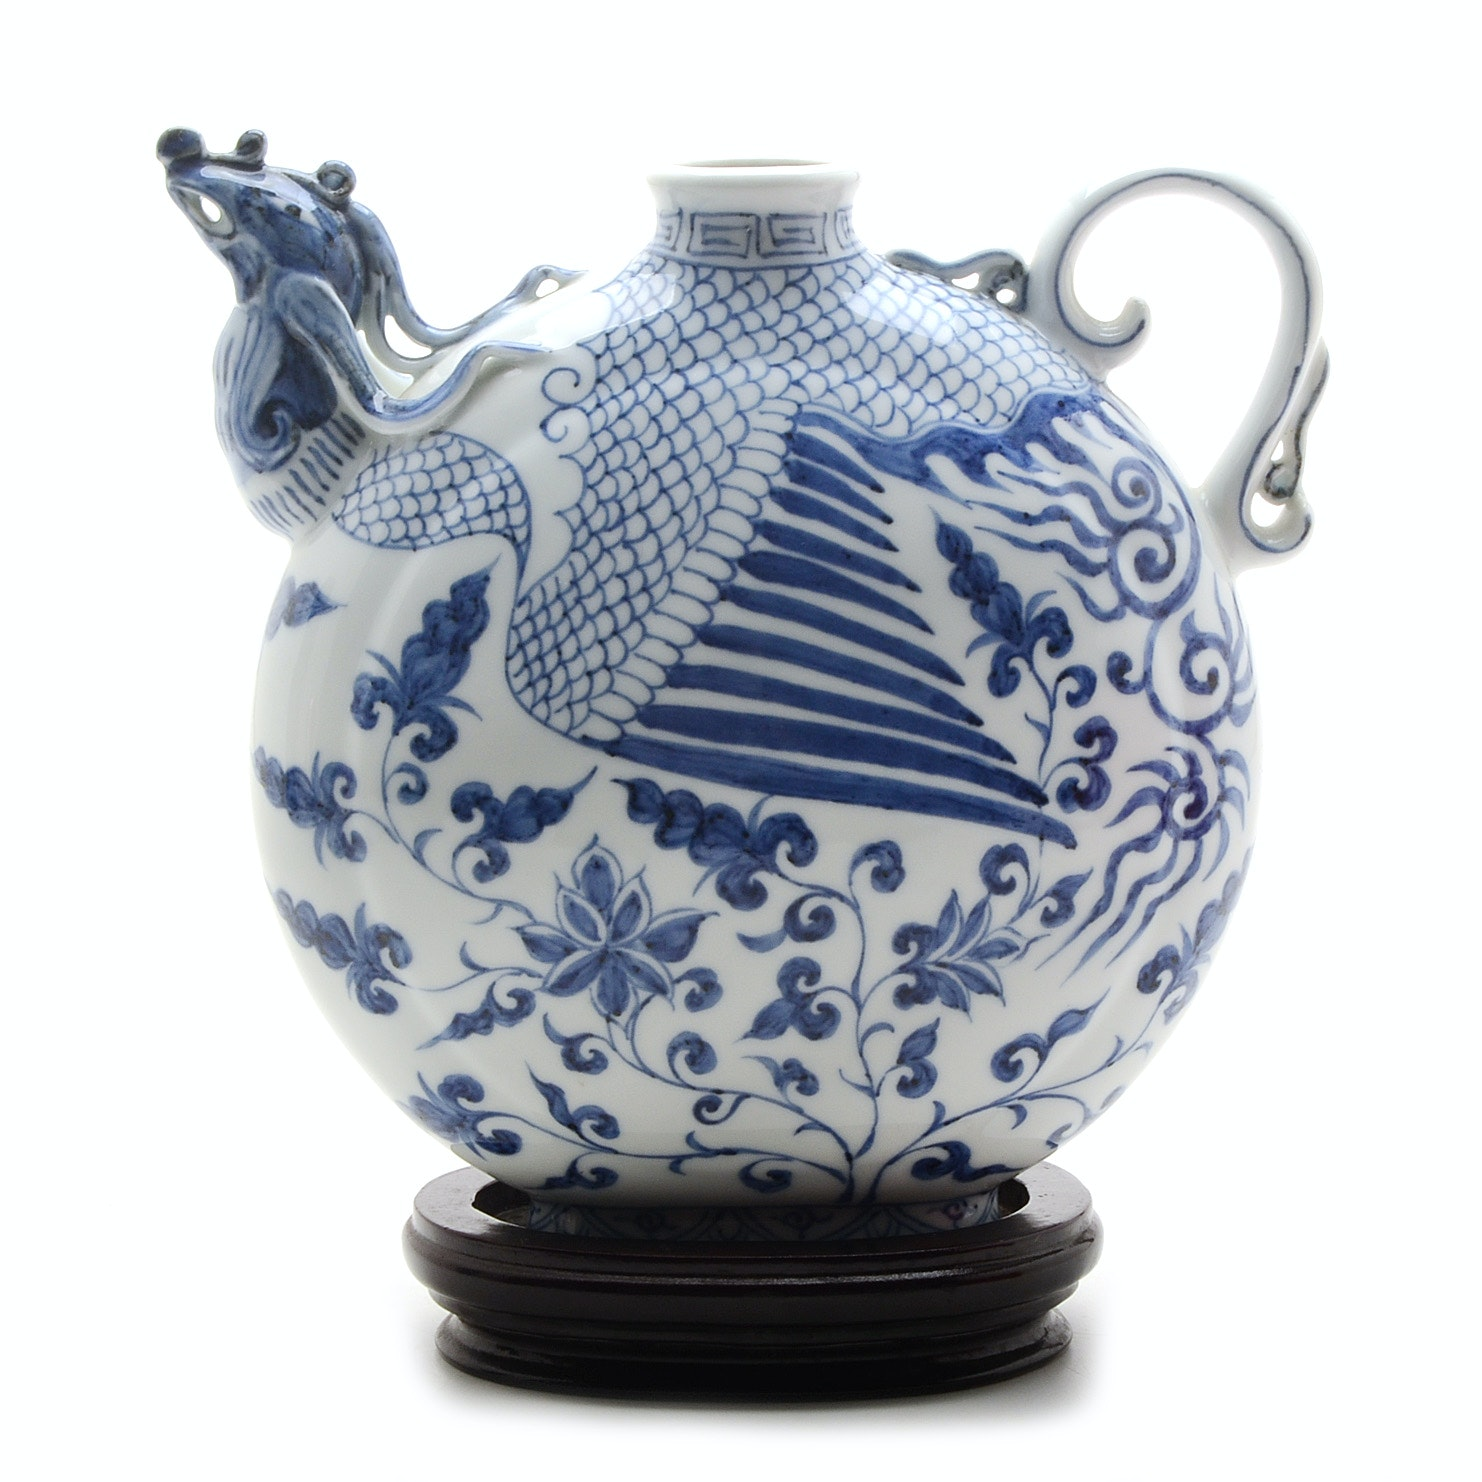 Reproduction Chinese Phoenix Moon Flask